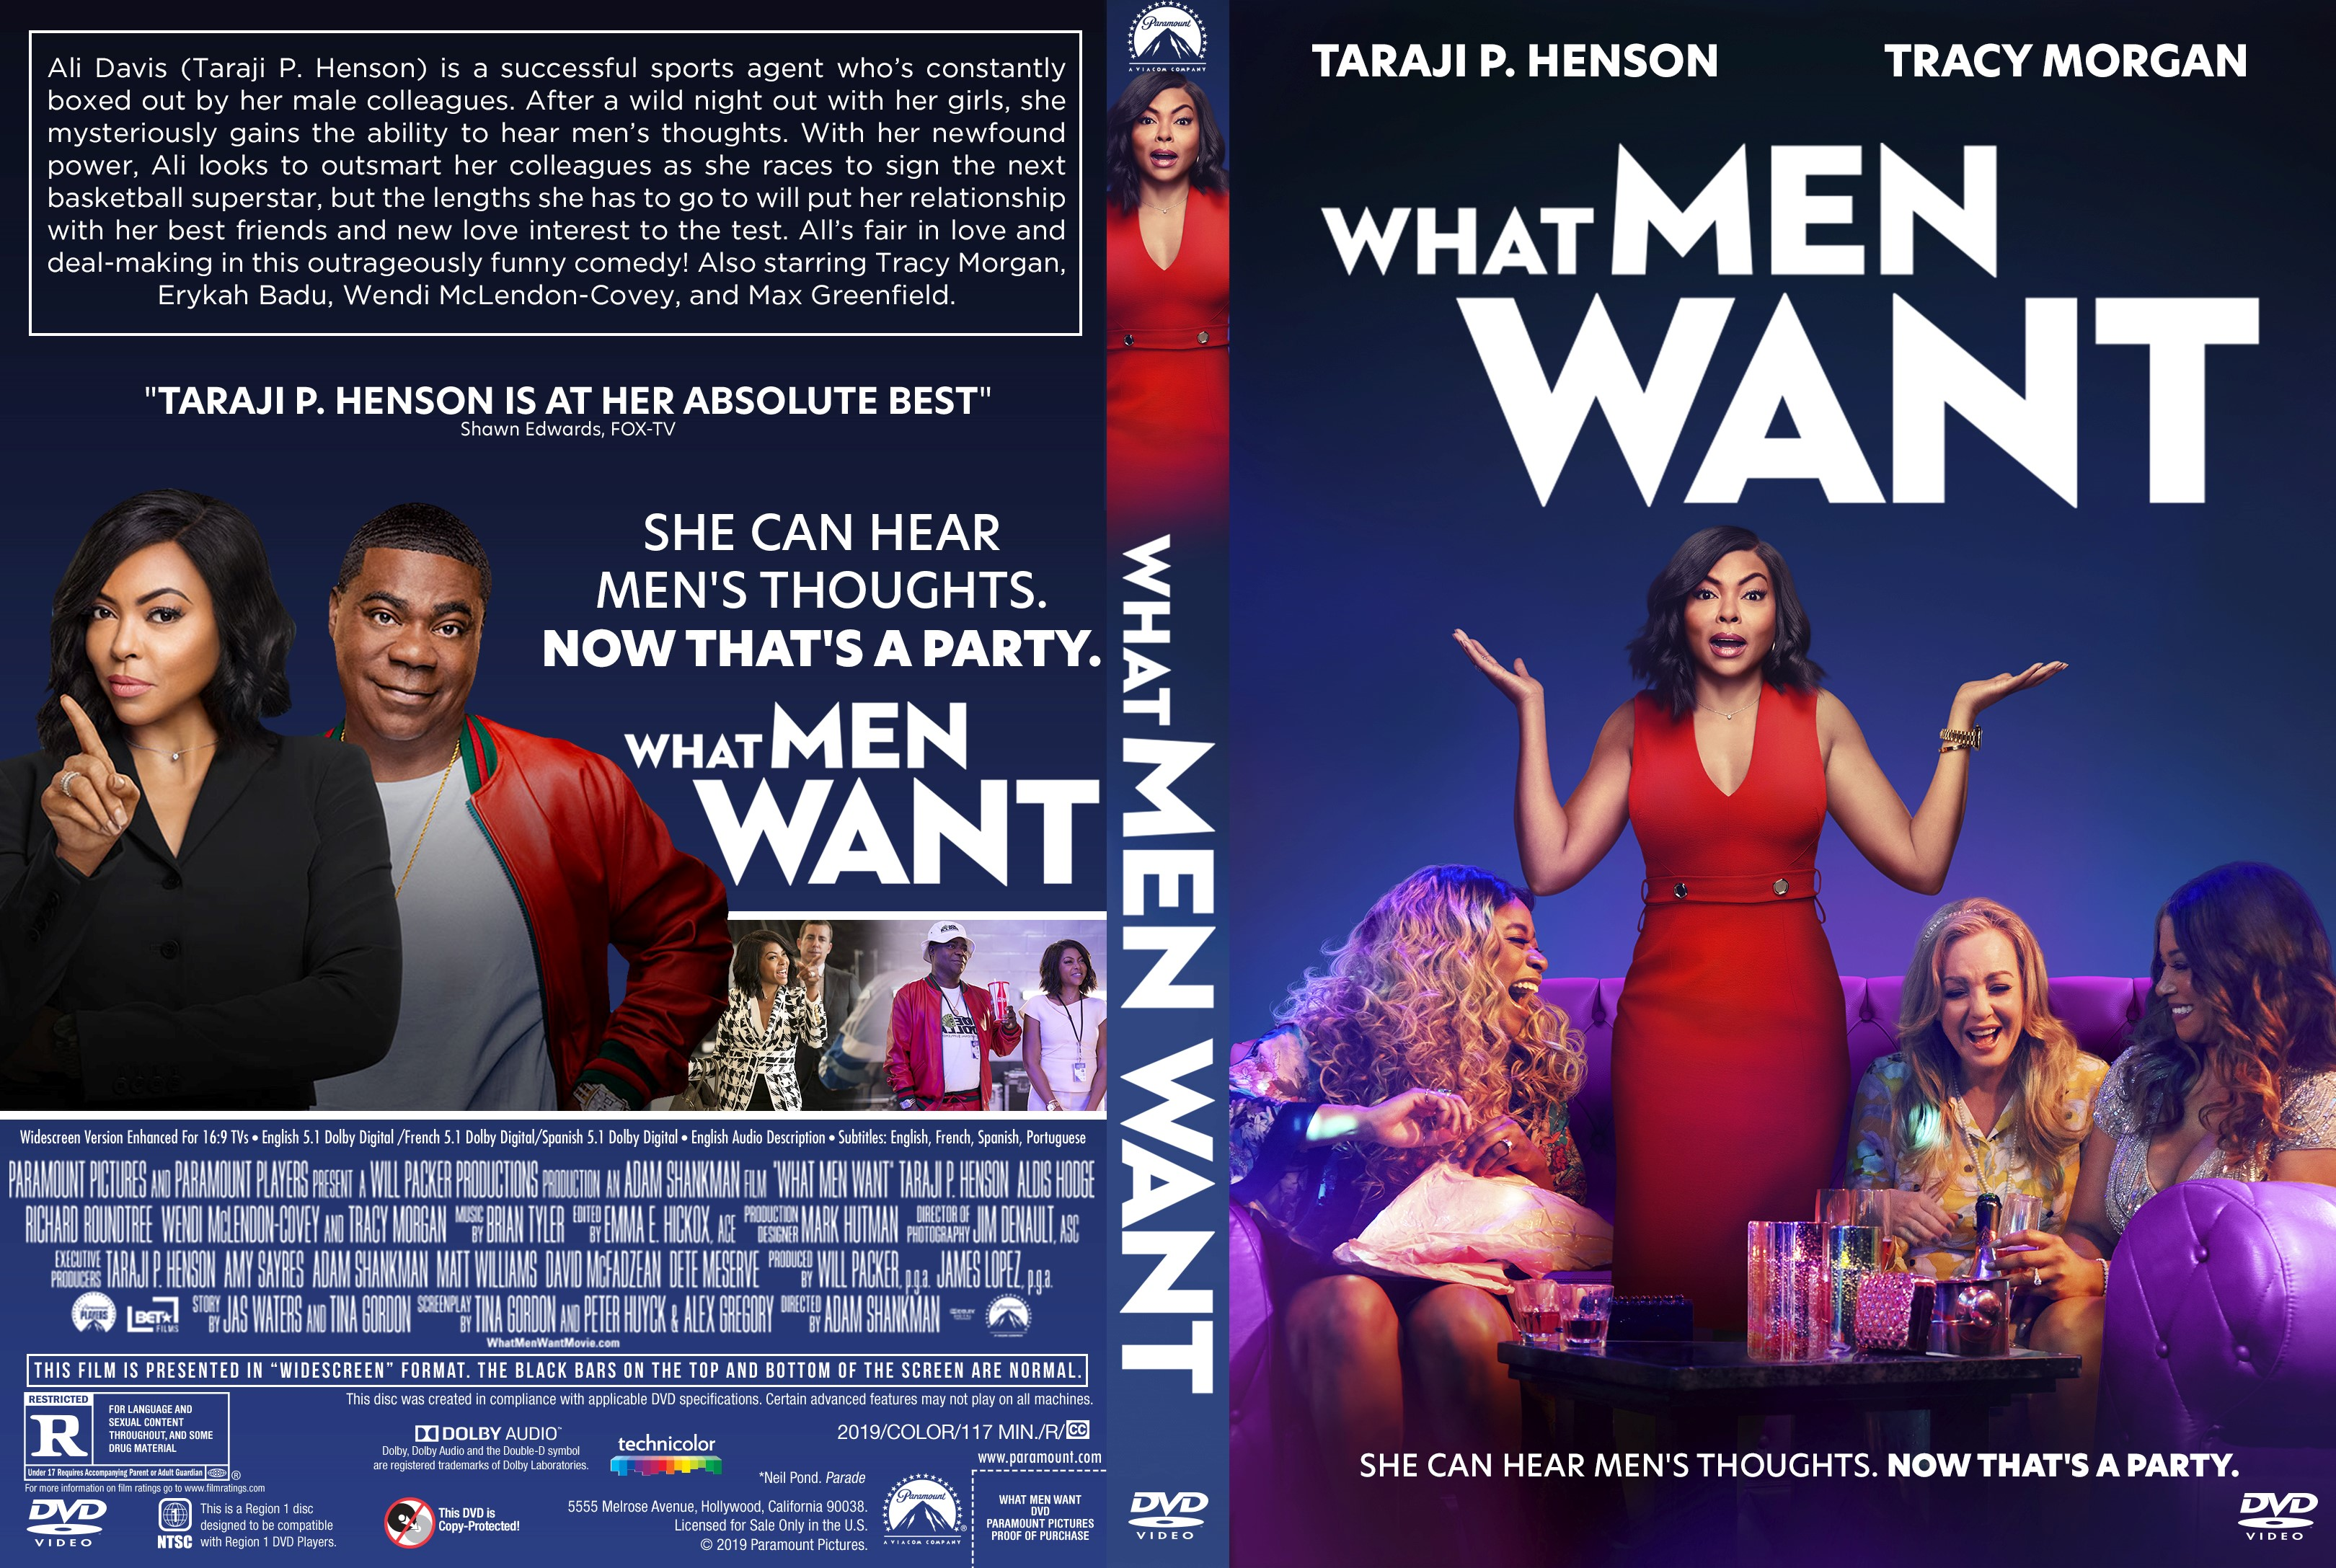 What Men Want DVD Cover | Cover Addict - Free DVD, Bluray ...